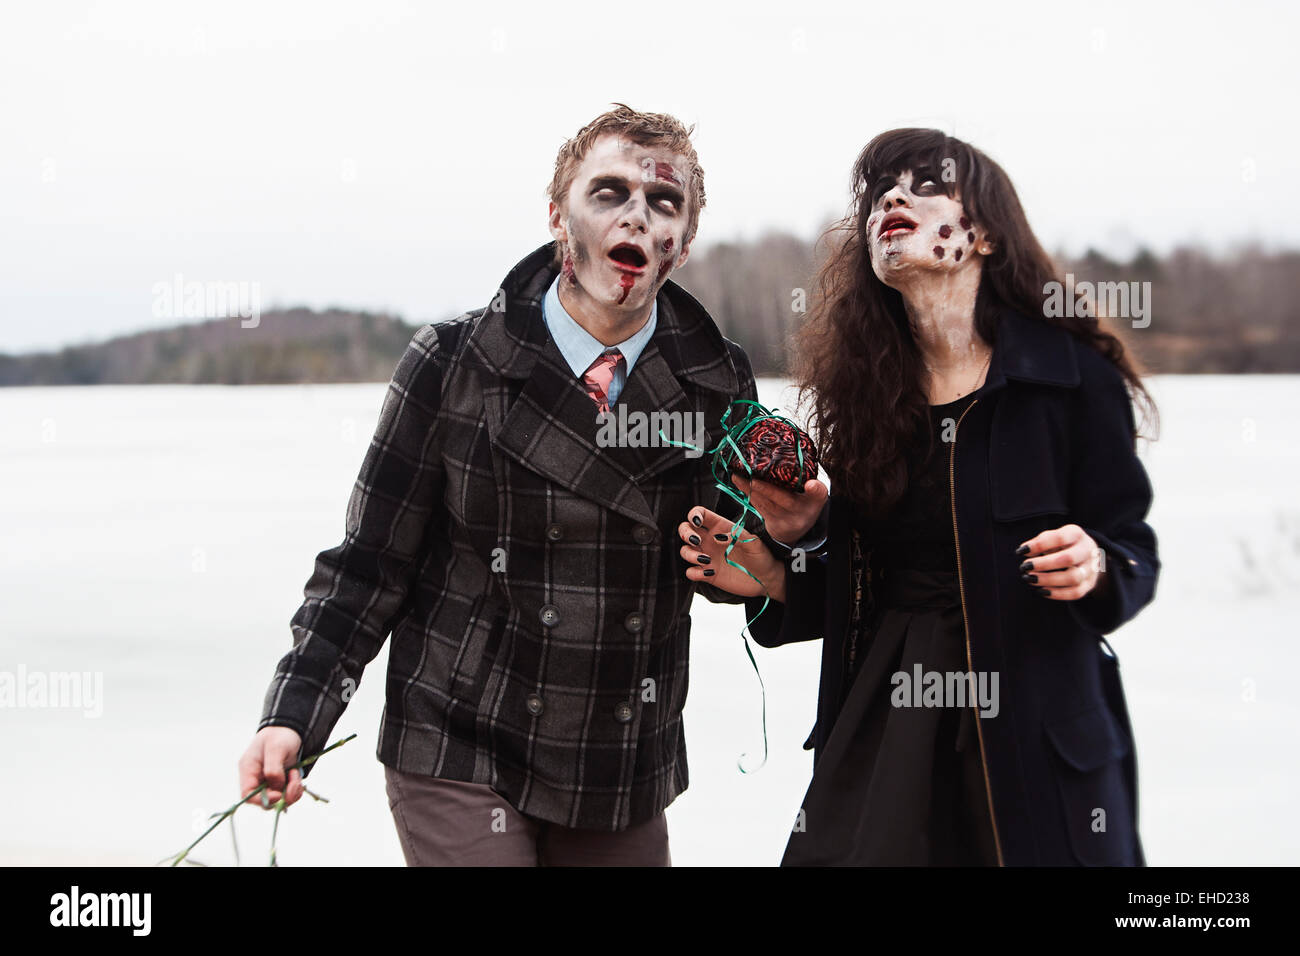 Zombies getting insane from smell of brains - Stock Image